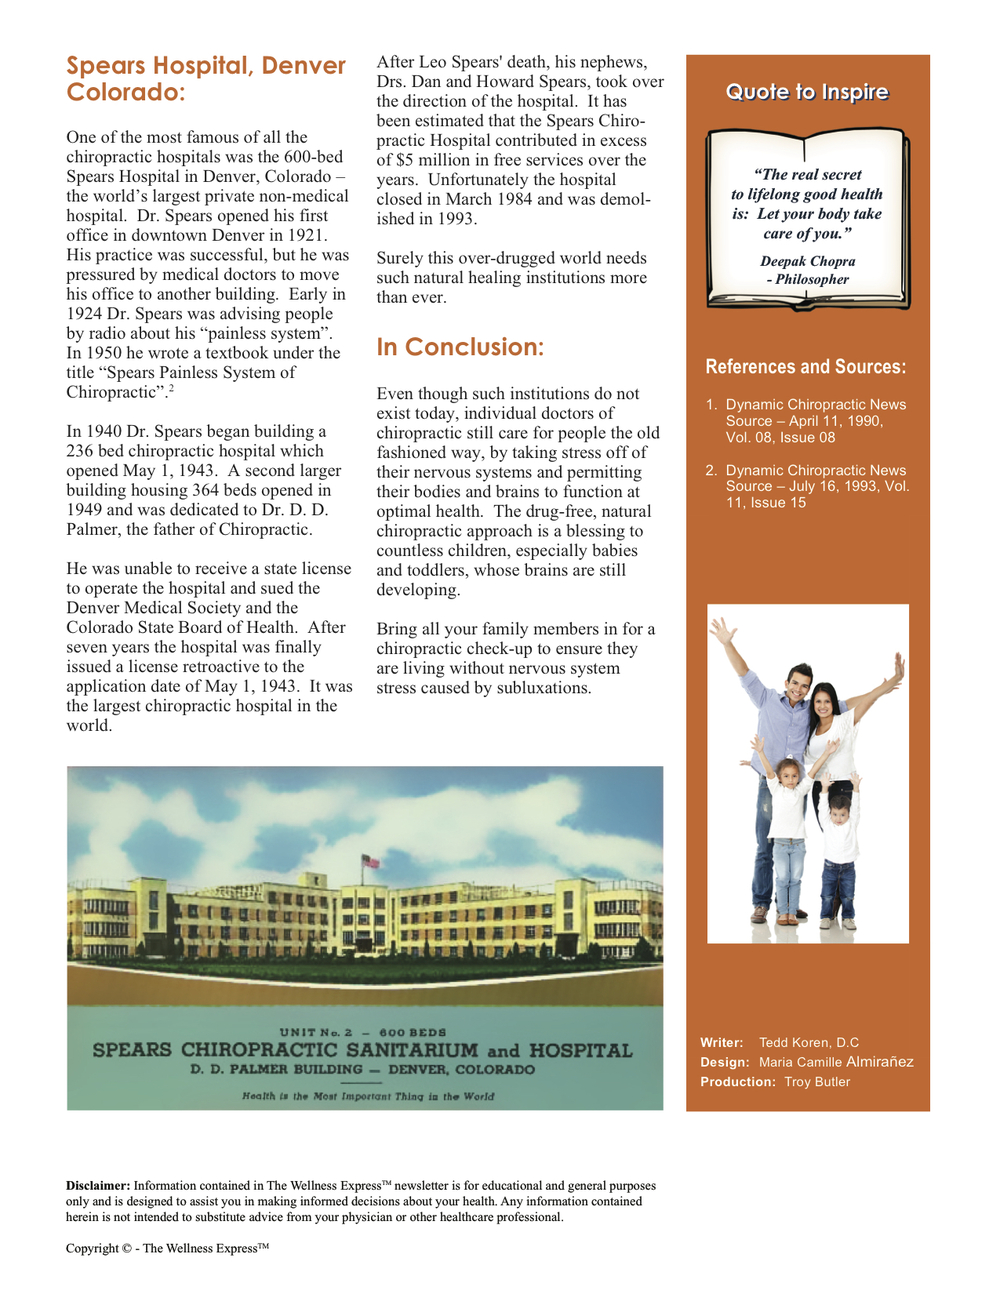 Weekly Newsletter: Did You Know Chiropractors Ran Hospitals?